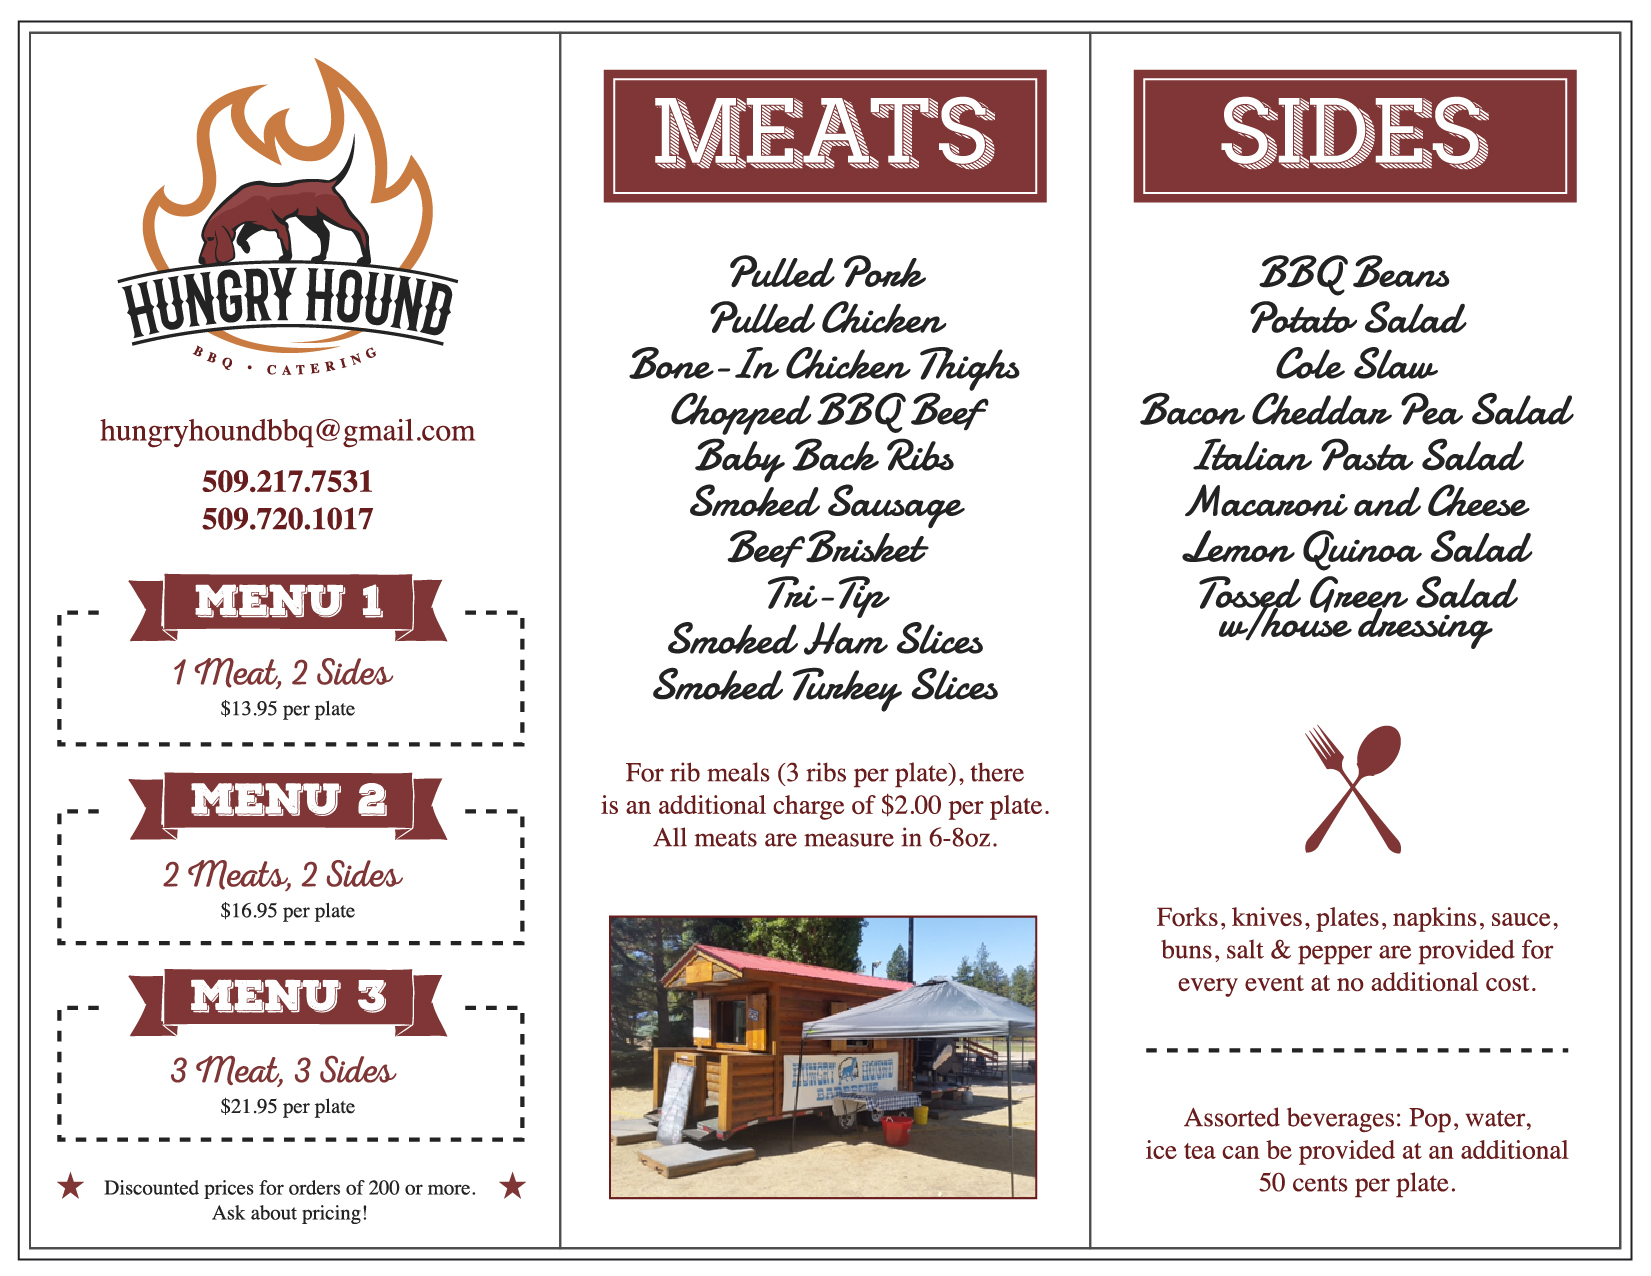 Hungry Hound BBQ Catering Menu